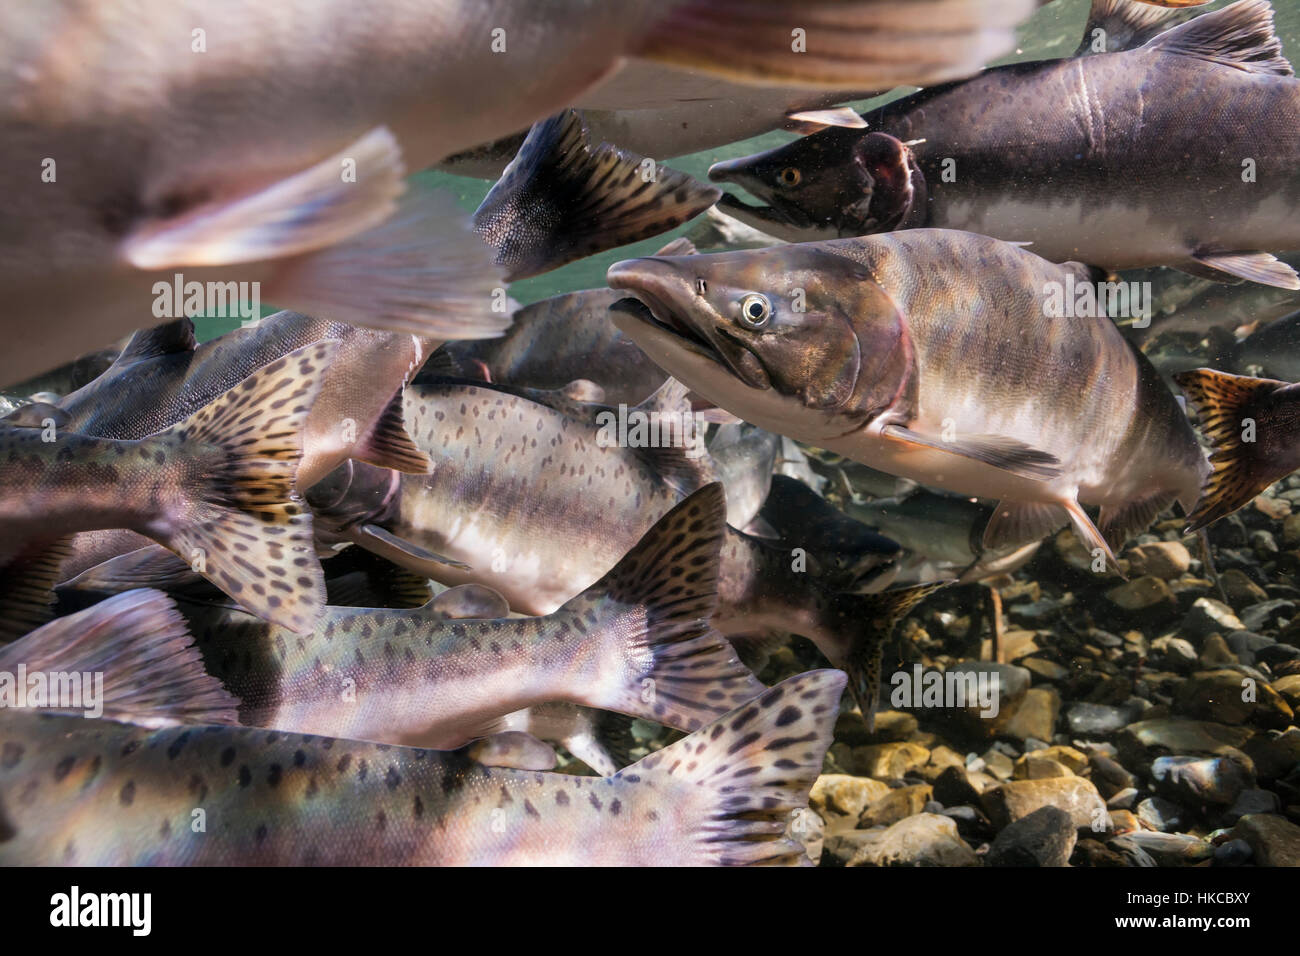 Underwater view of migrating pink salmon in Hartney Creek near Cordova, Alaska in the summer. - Stock Image